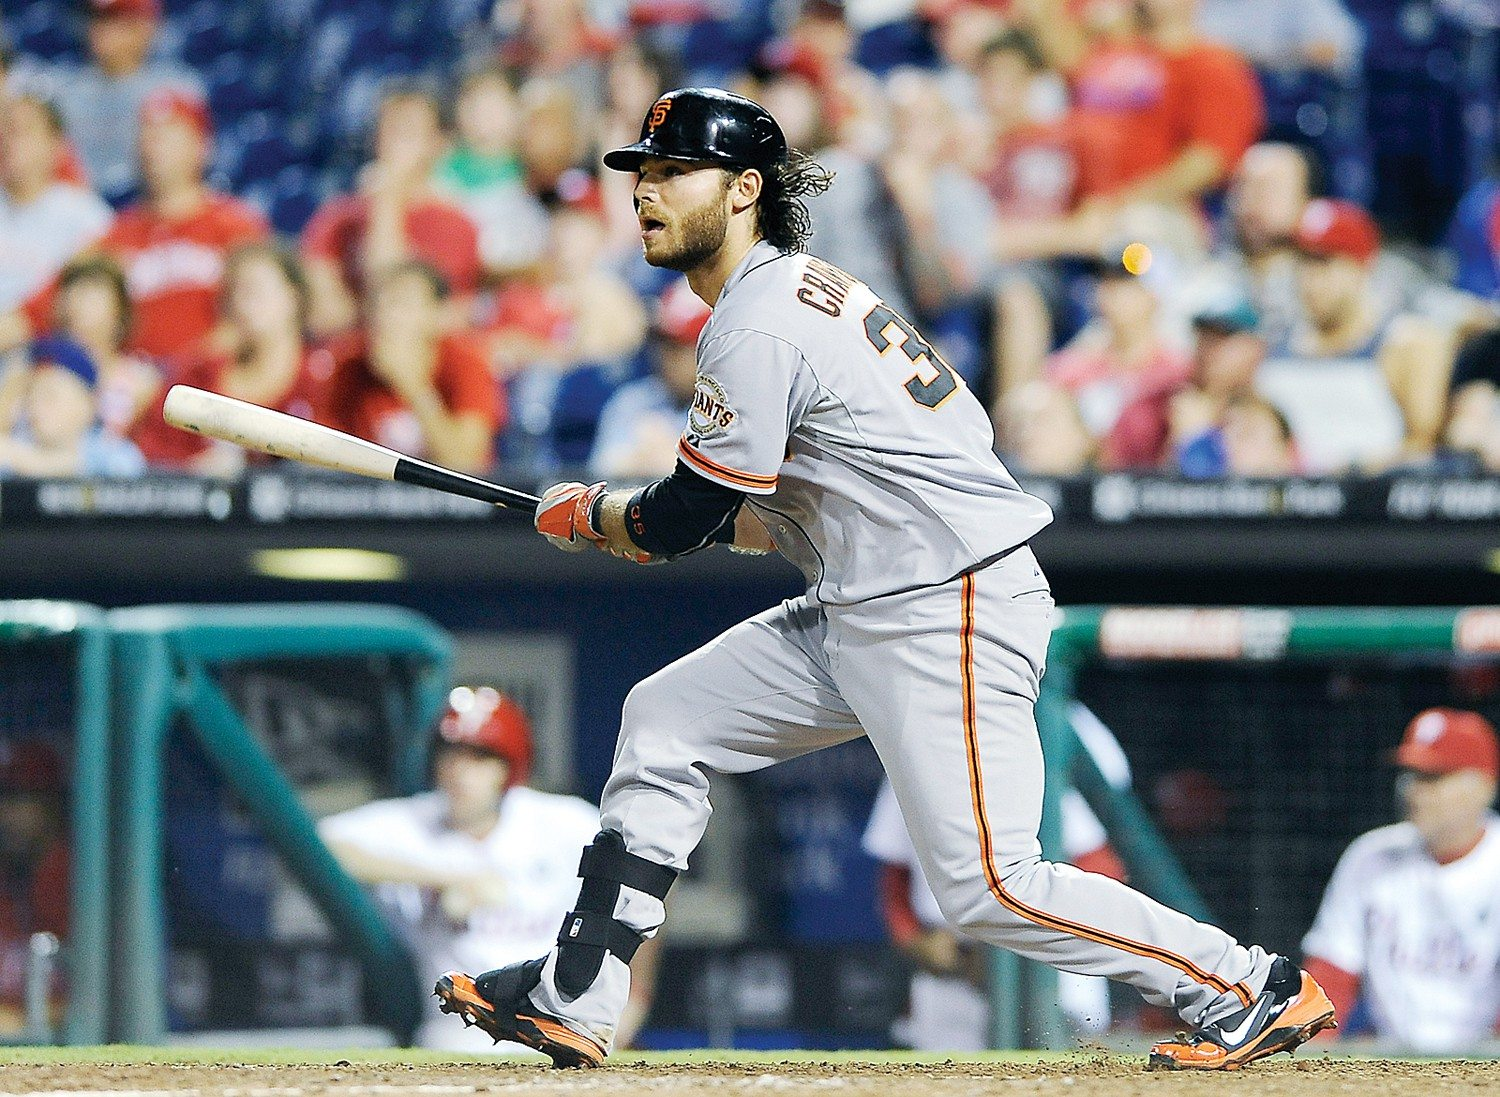 Michael Perez/APThe Giants' Brandon Crawford strokes a bases-loaded double in the 14th inning to snap a 5-5 tie. Crawford came around to score.